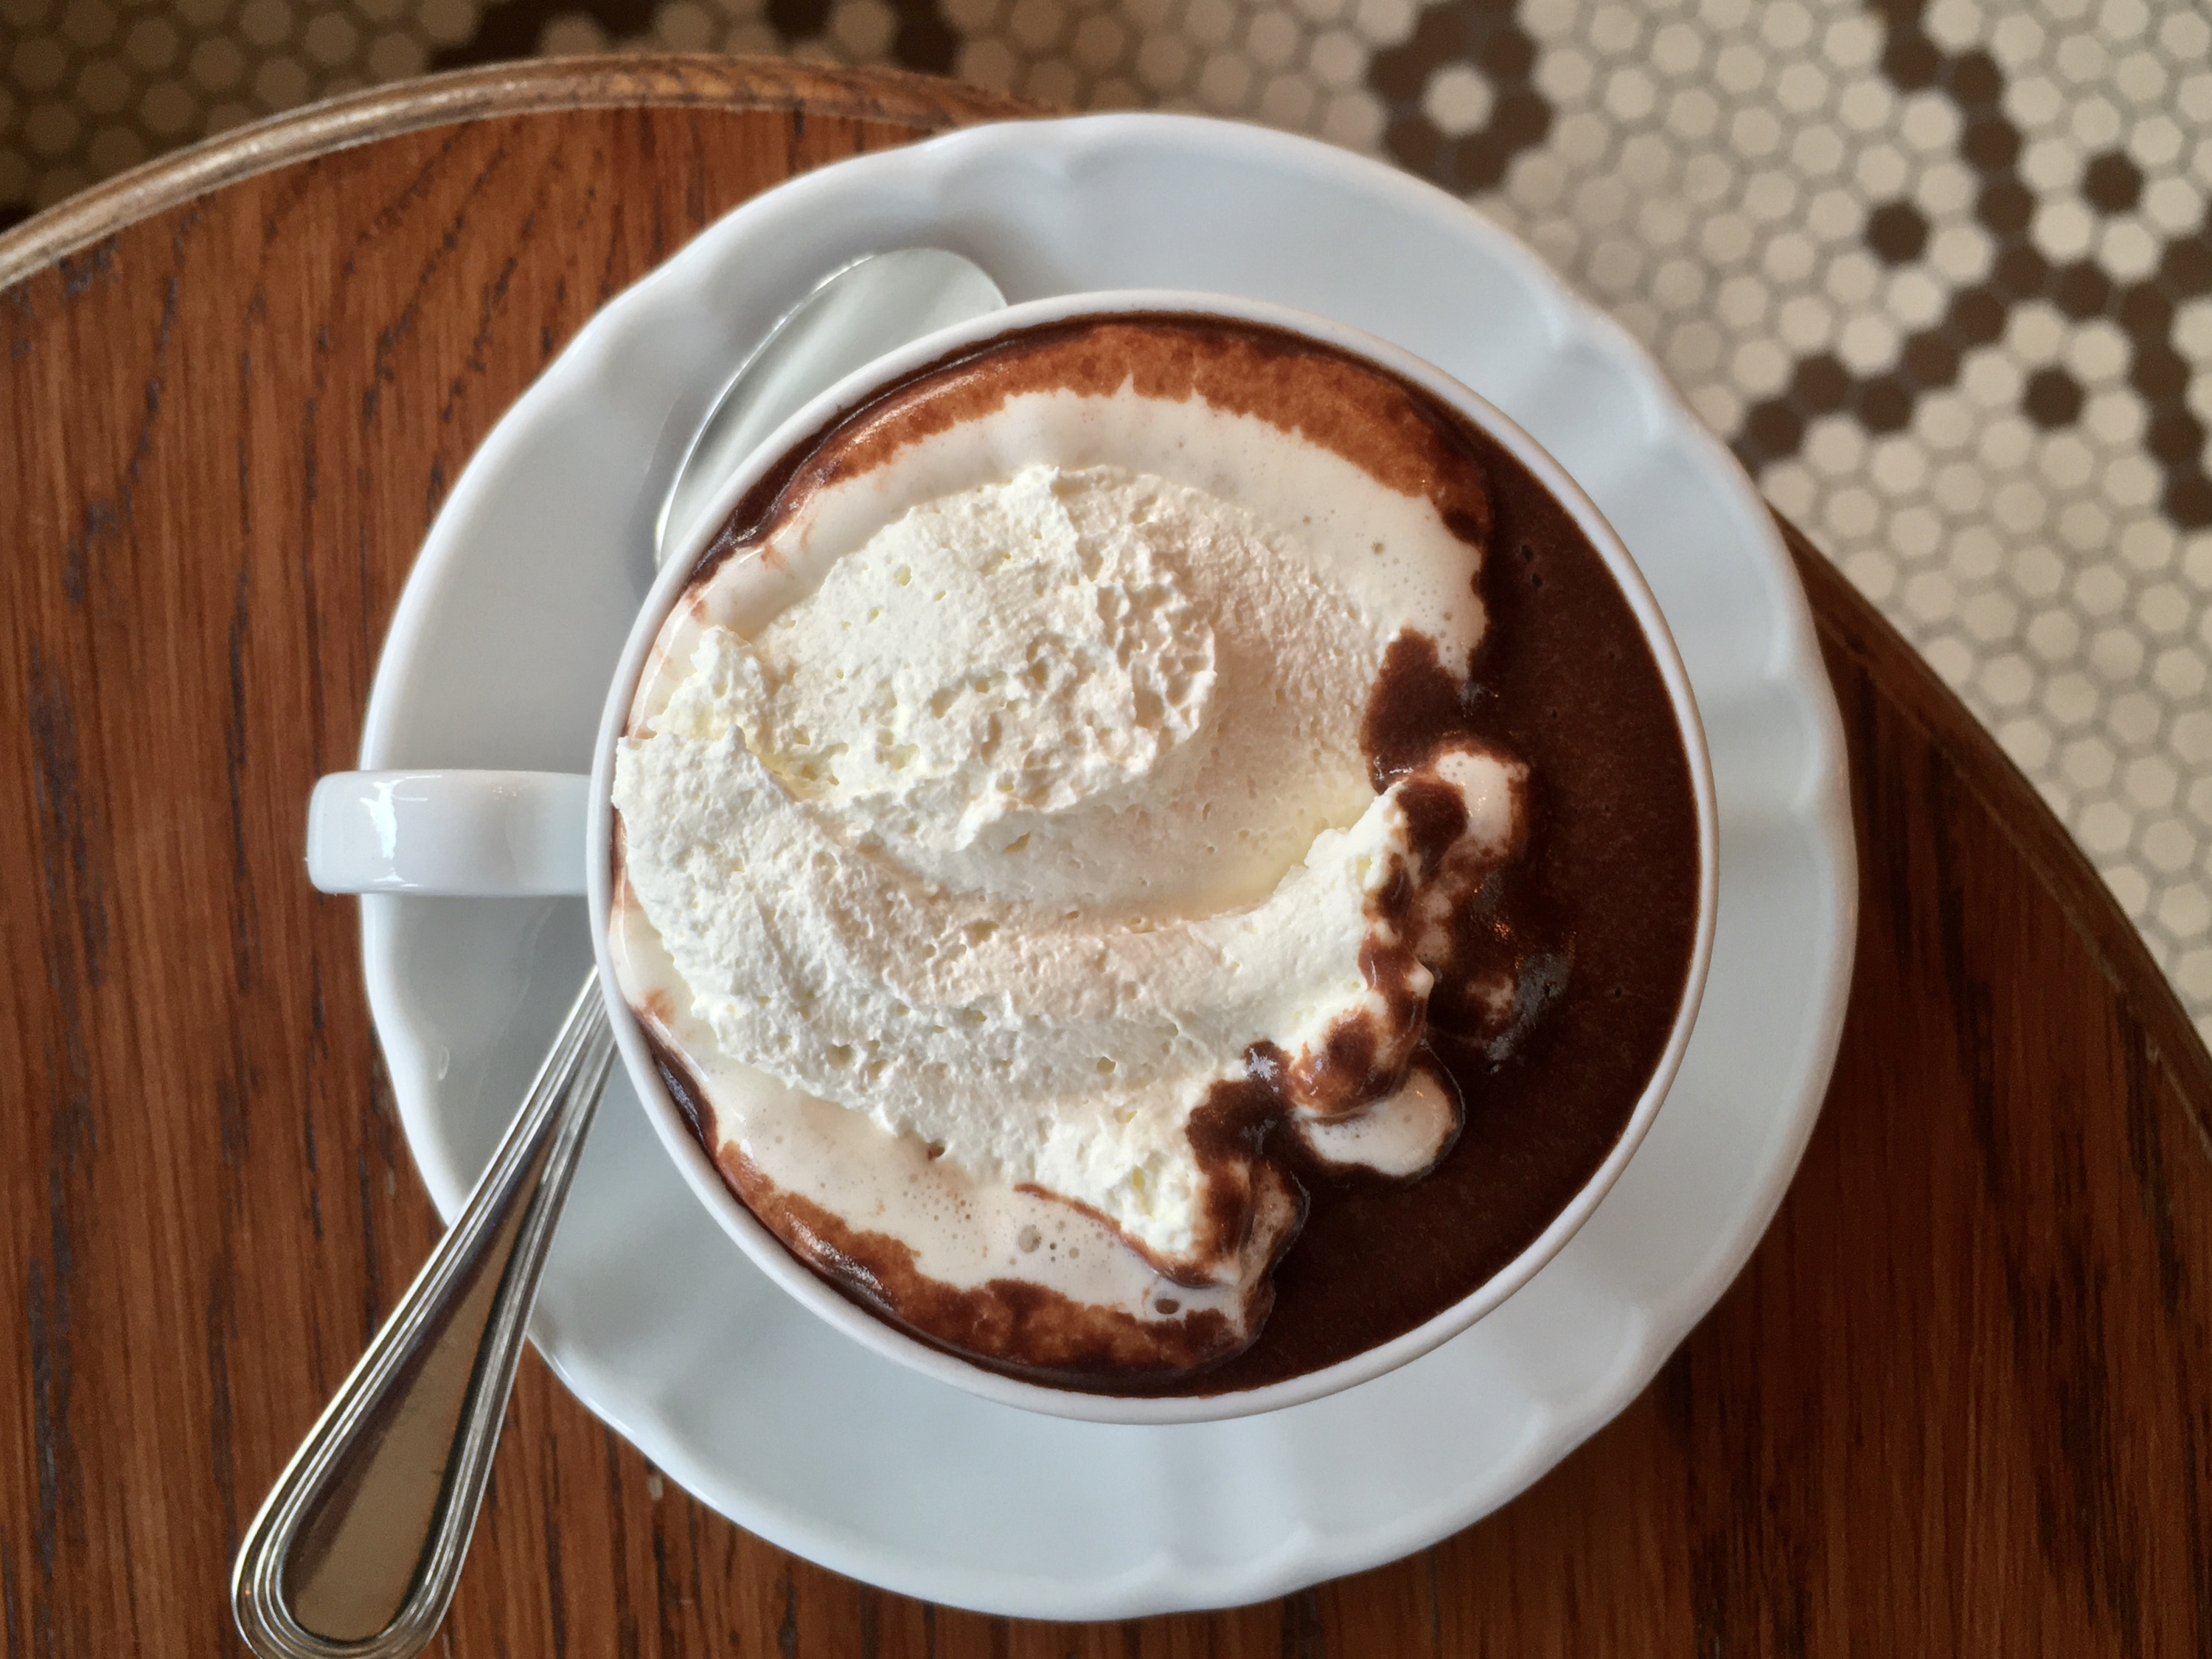 Where to find delicious hot cocoa